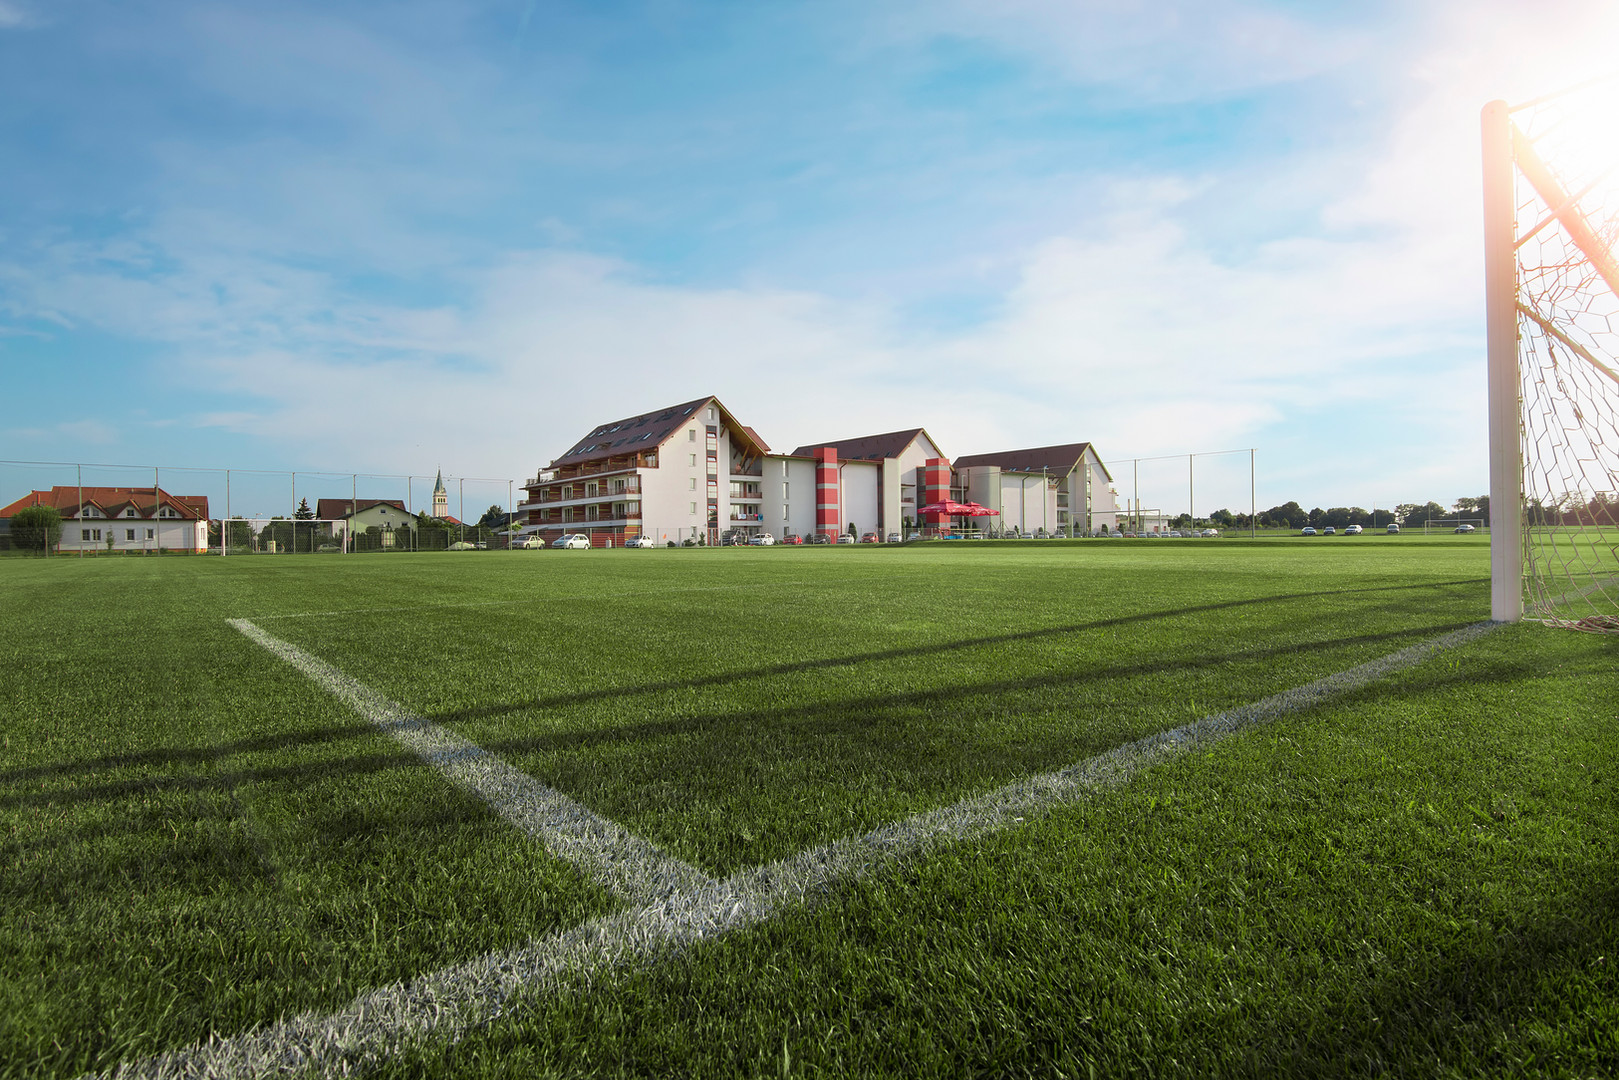 Terme Vivat-football field 1.jpg